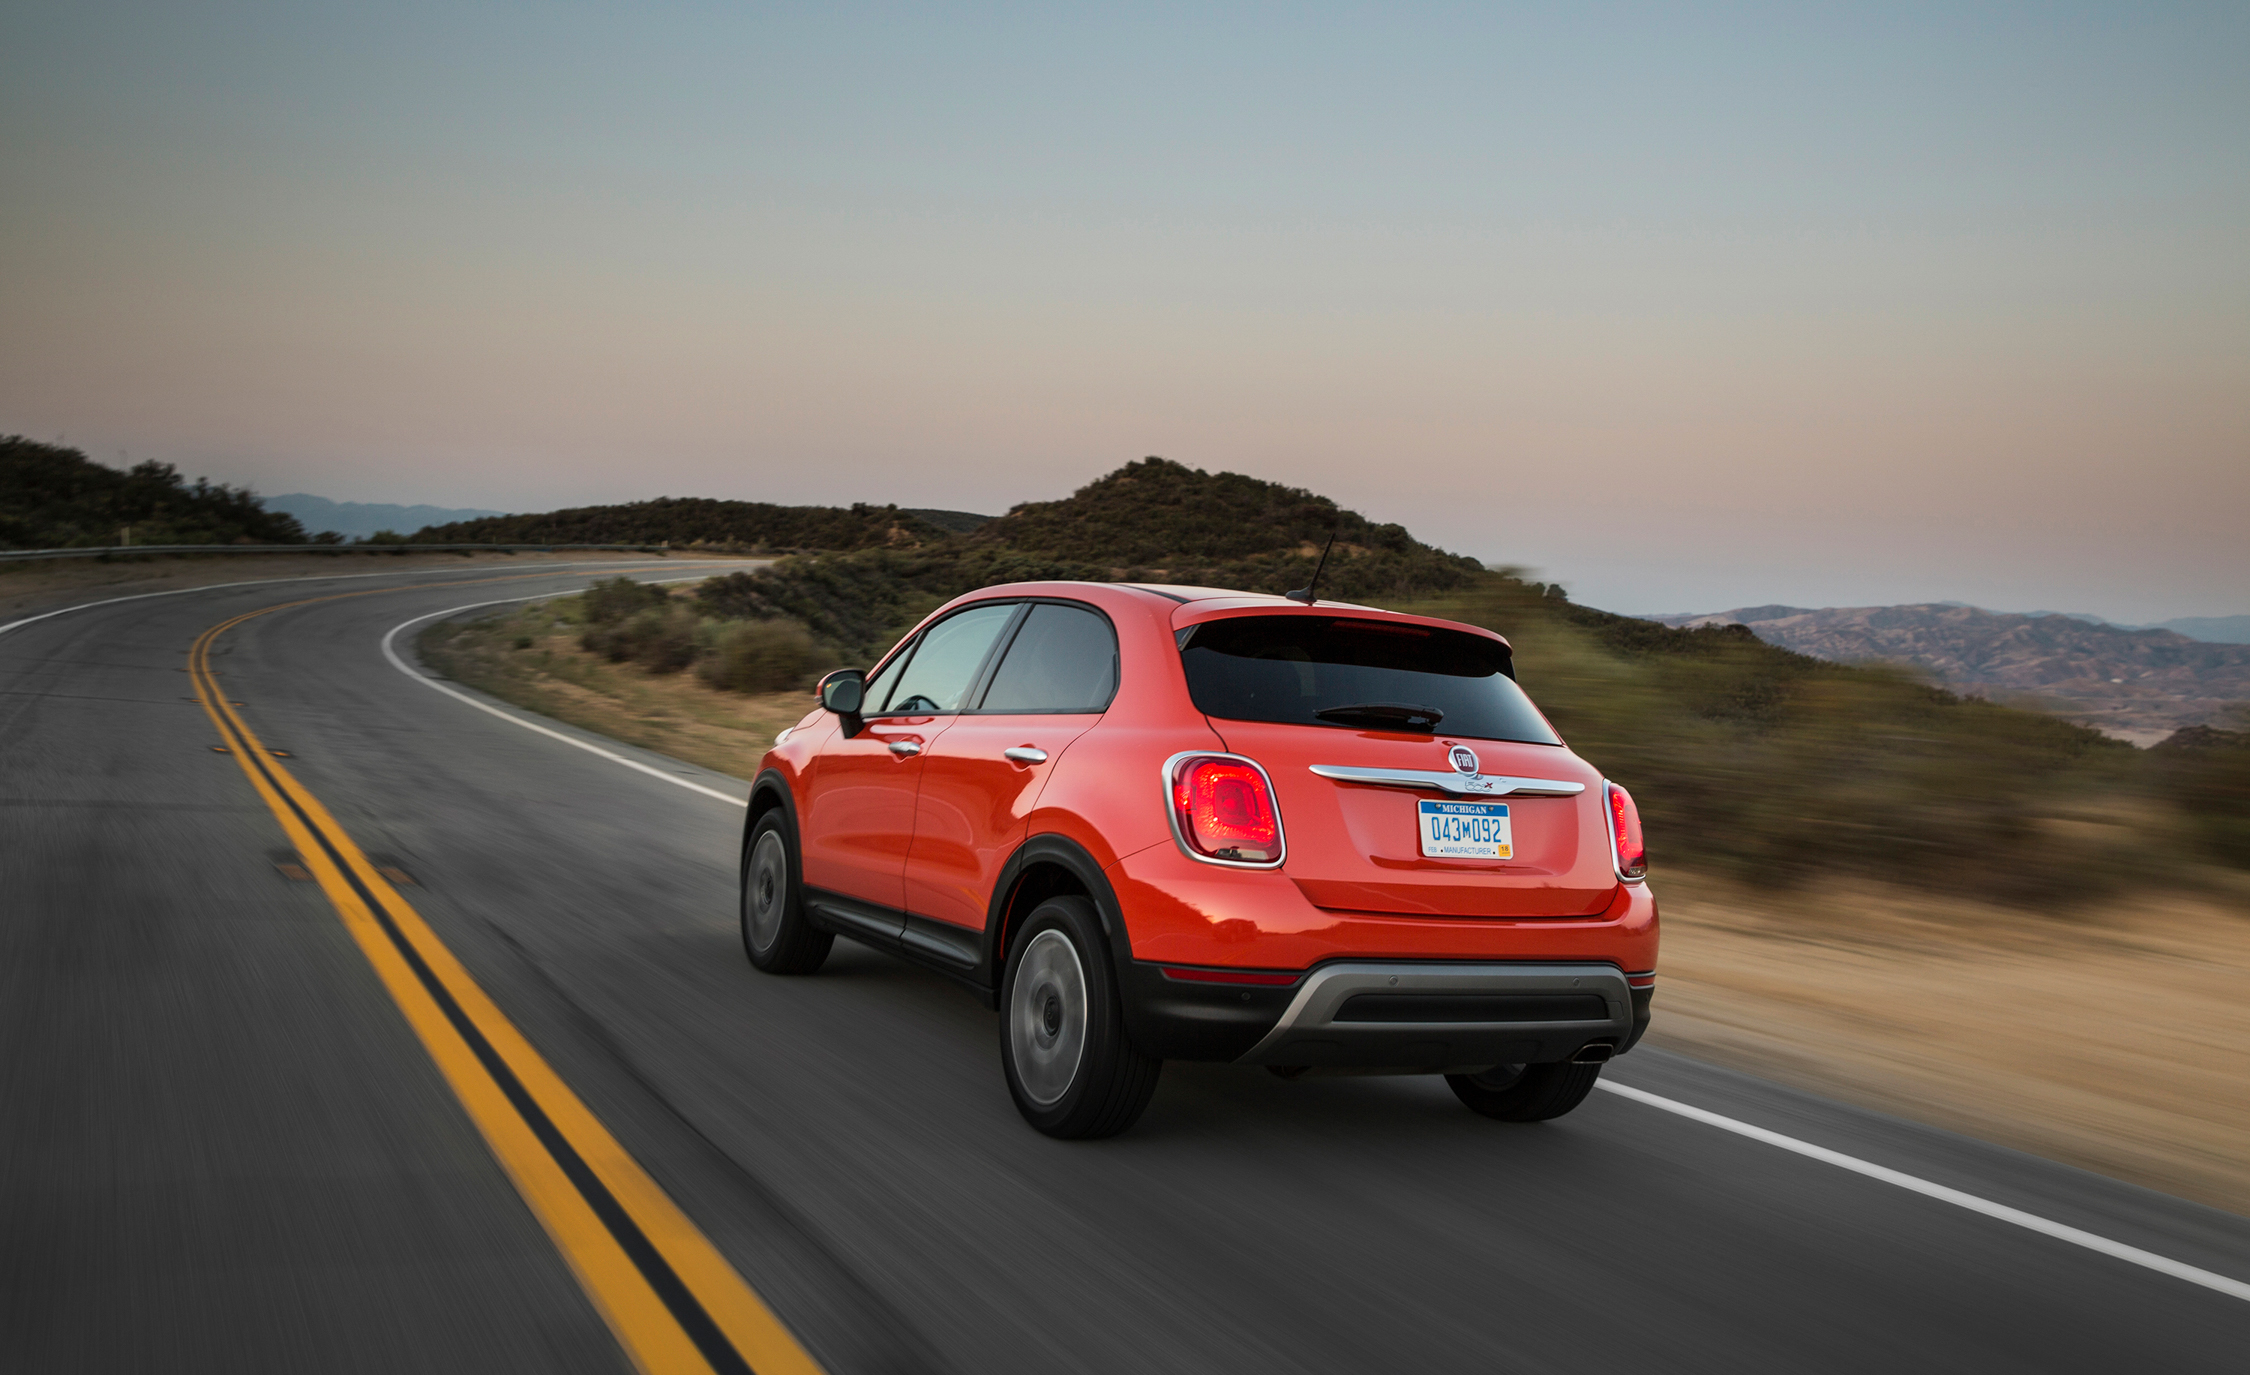 2016 Fiat 500X Trekking Rear Side View